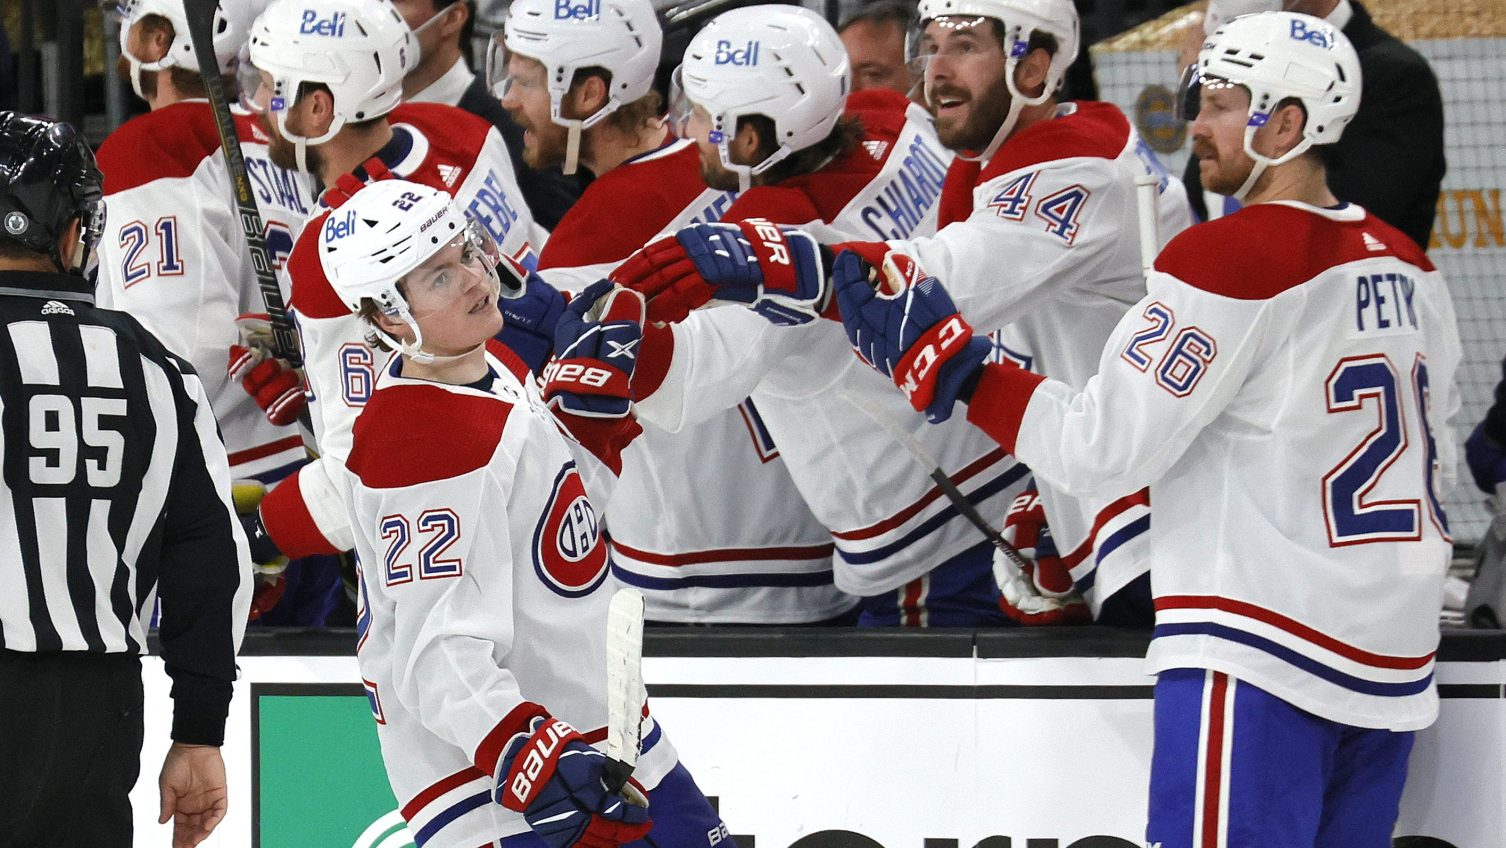 Canadiens-Golden Knights stream – Game 6 on USA Network